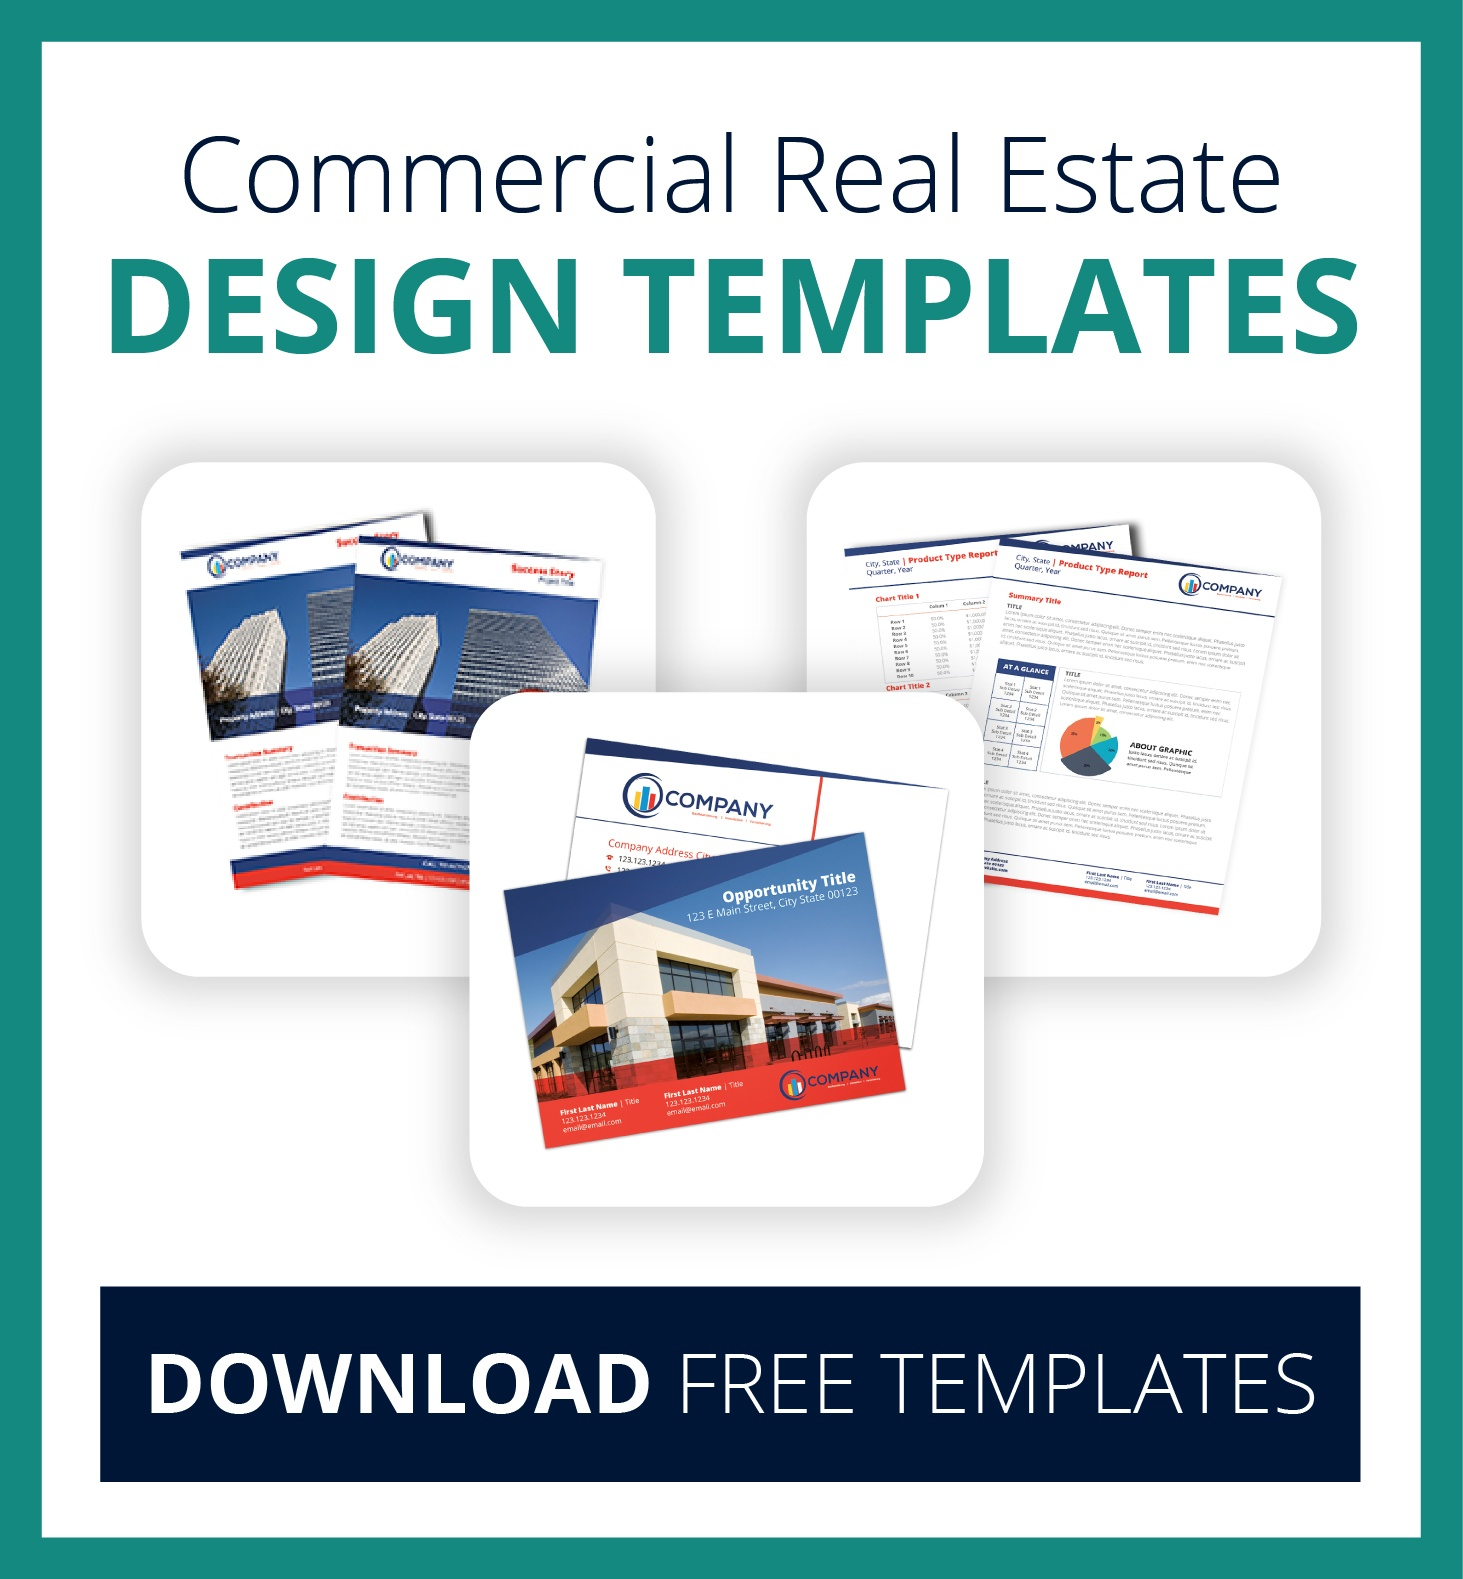 Commercial Real Estate Blog For Marketing Commercial Real Estate